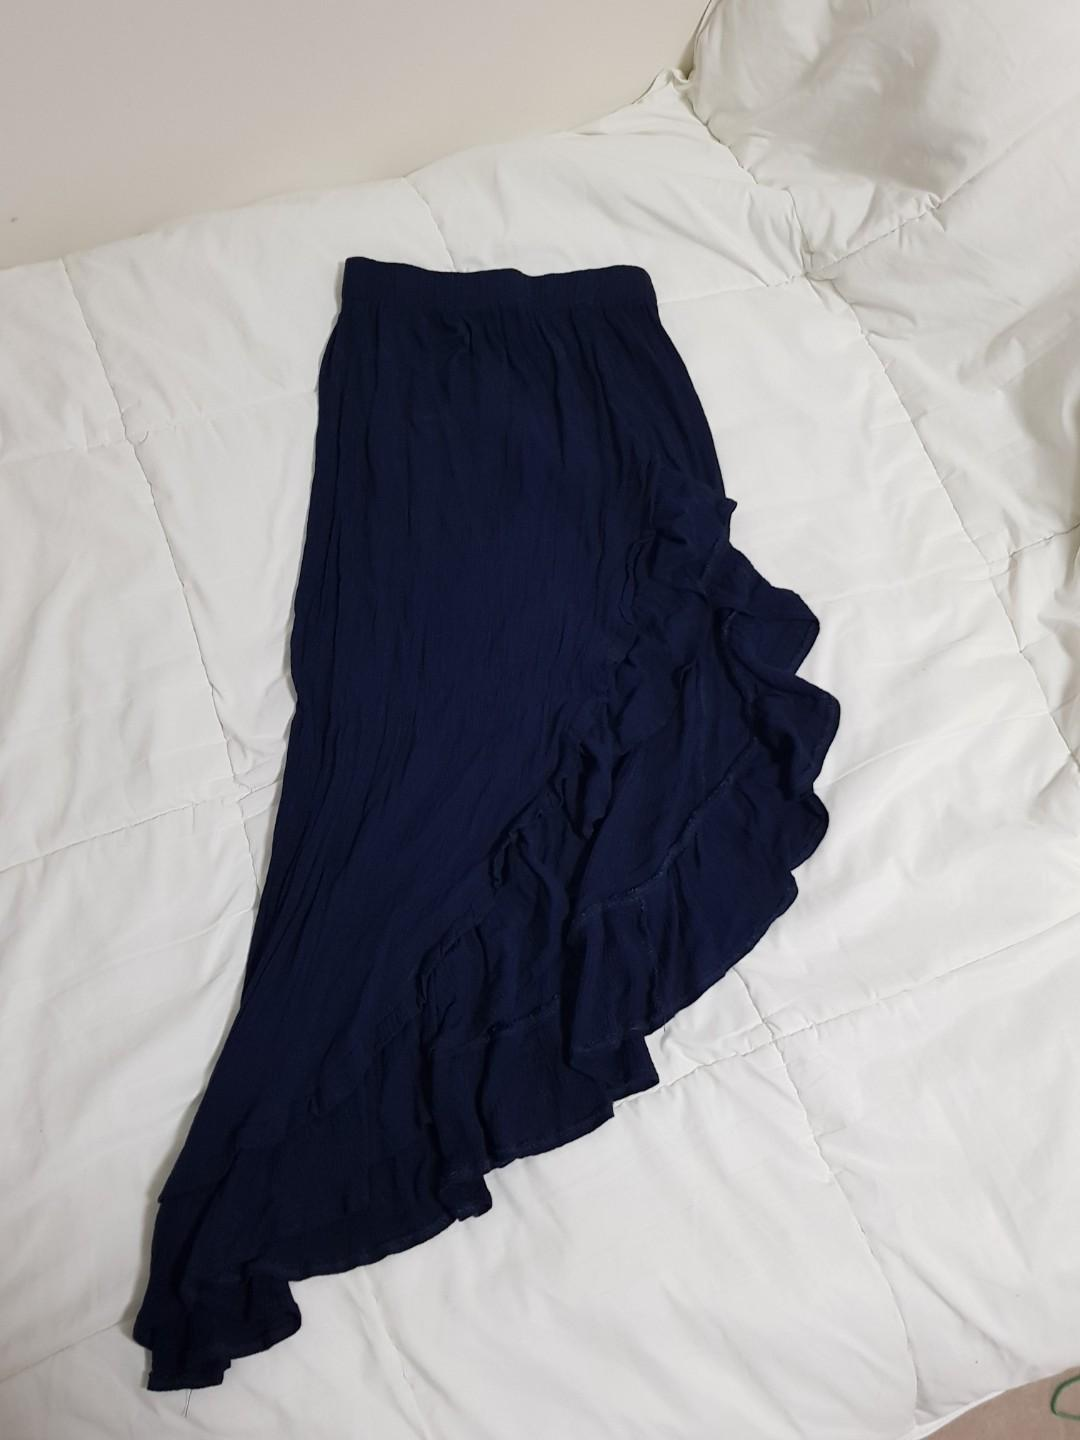 Navy Flowy Skirt w/ slit